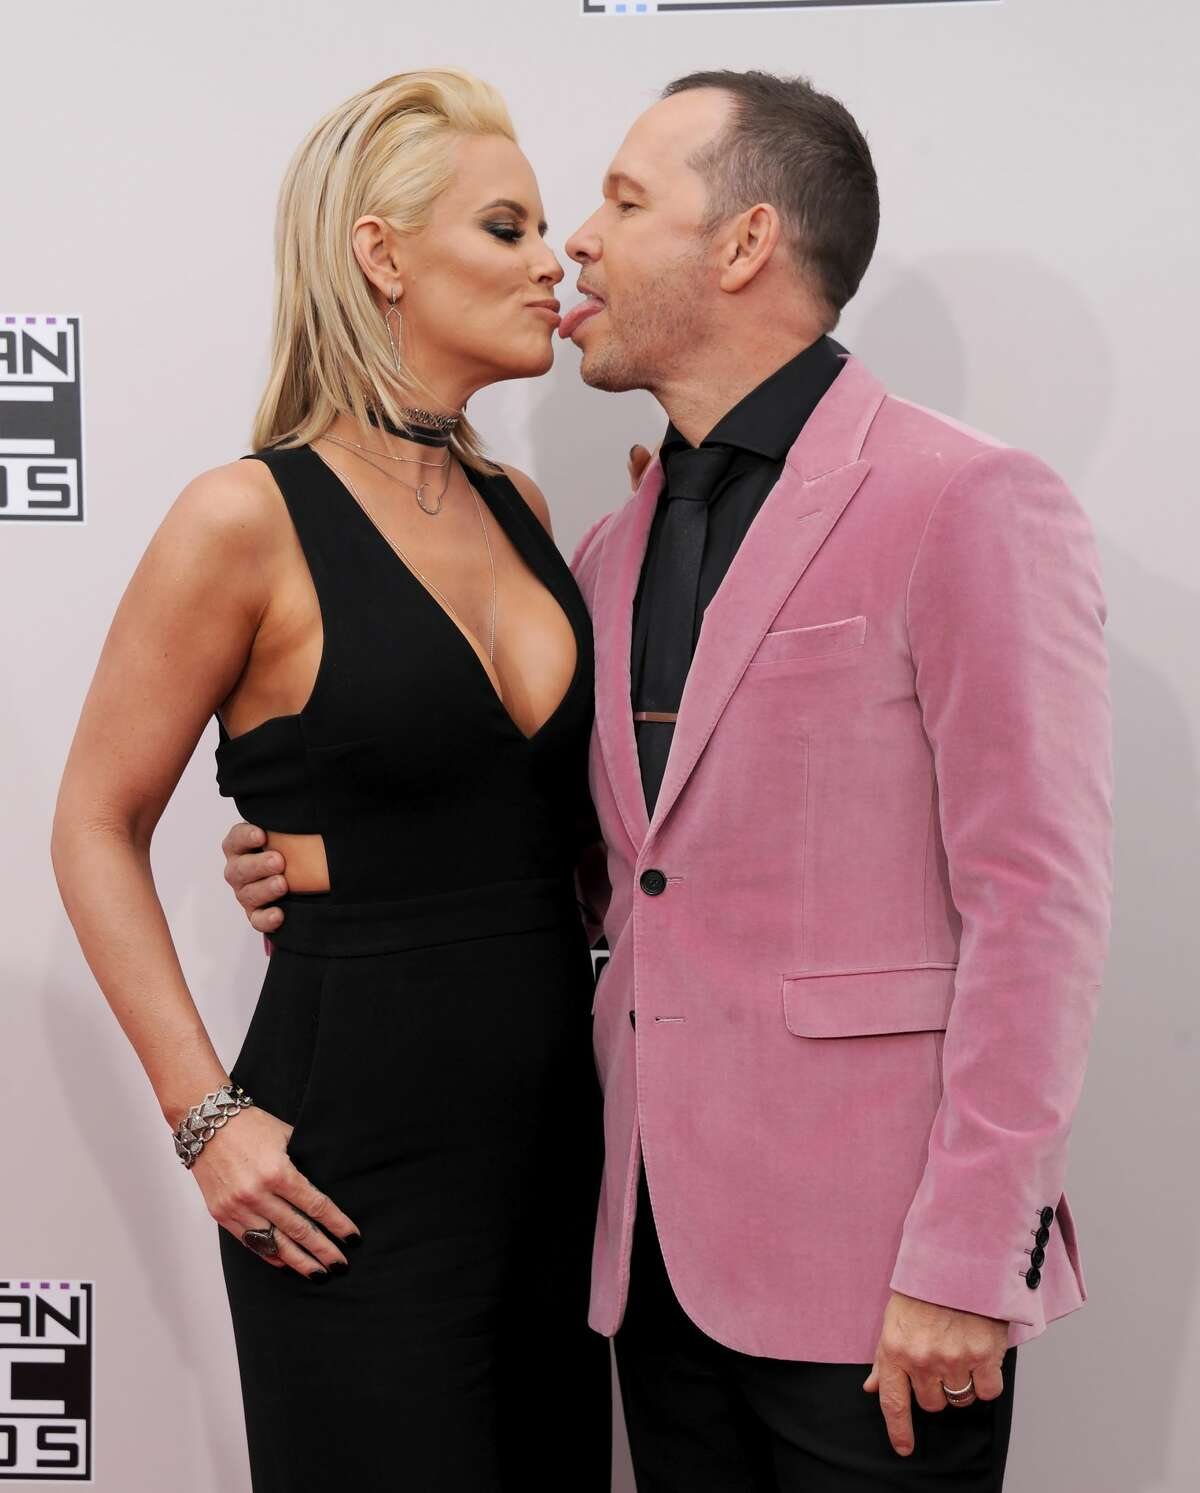 Jenny McCarthy and Donnie Wahlberg arrive at the 2016 American Music Awards at Microsoft Theater on November 20, 2016 in Los Angeles, California.